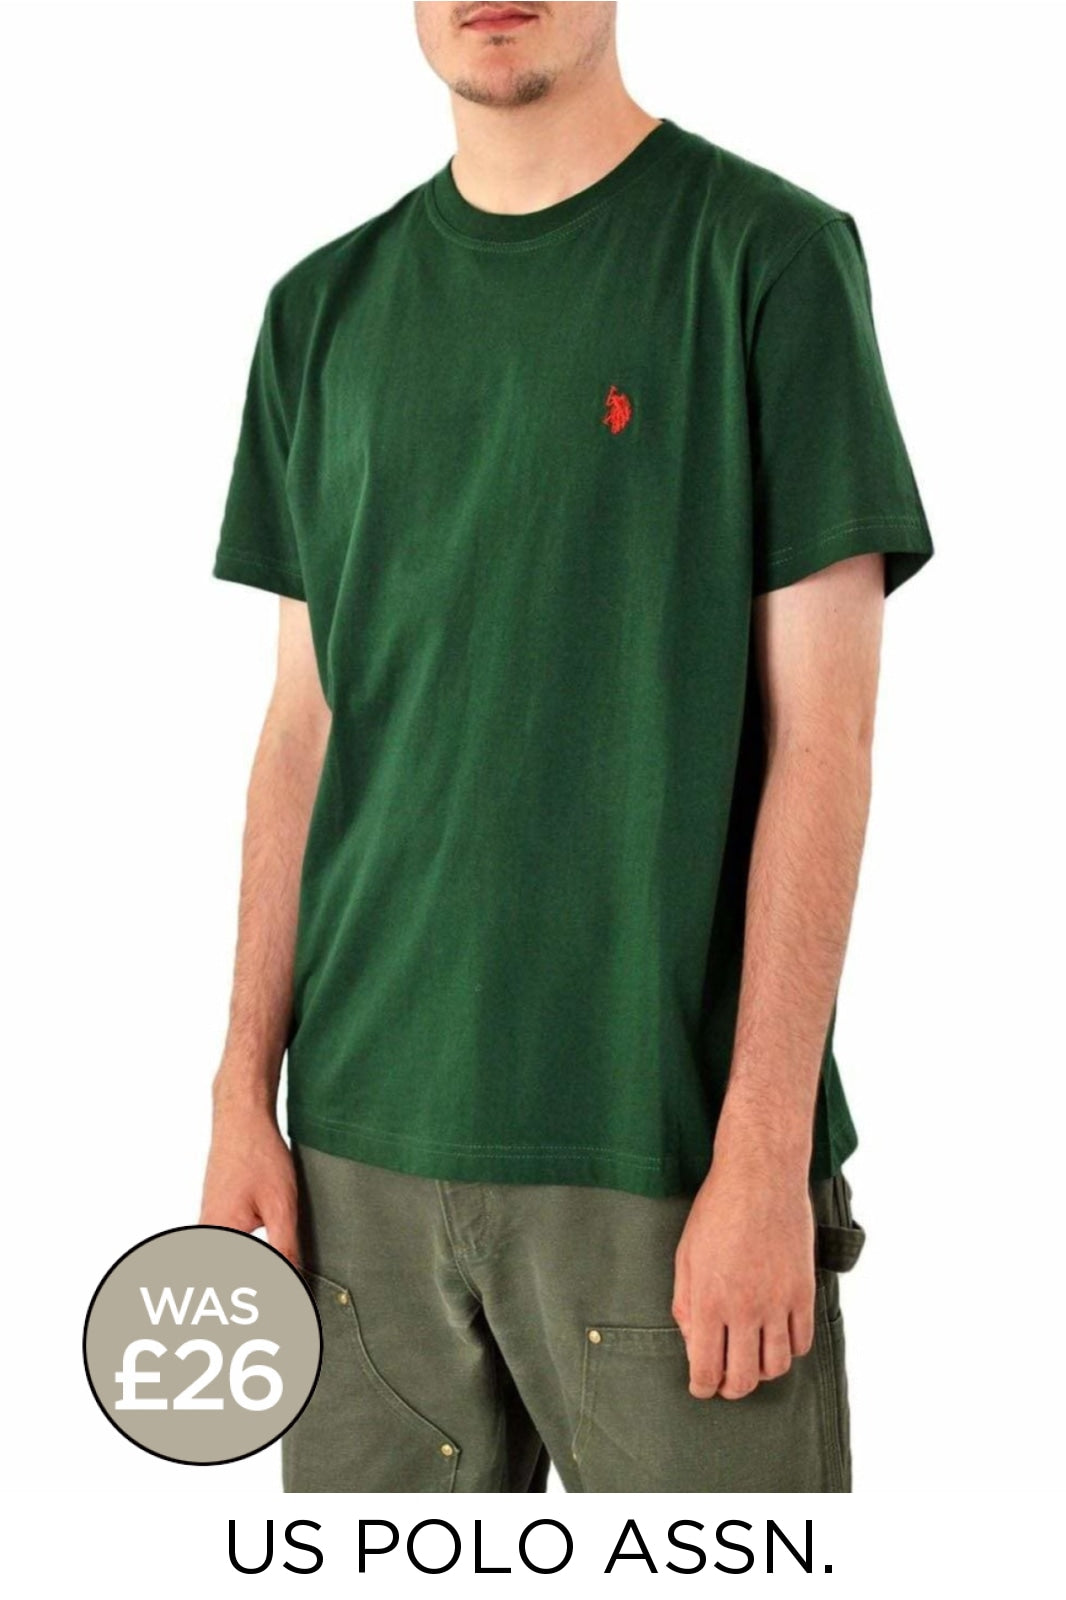 US Polo Assn. Cotton Crew Neck T Shirt | Large / Forest Green Secret Label